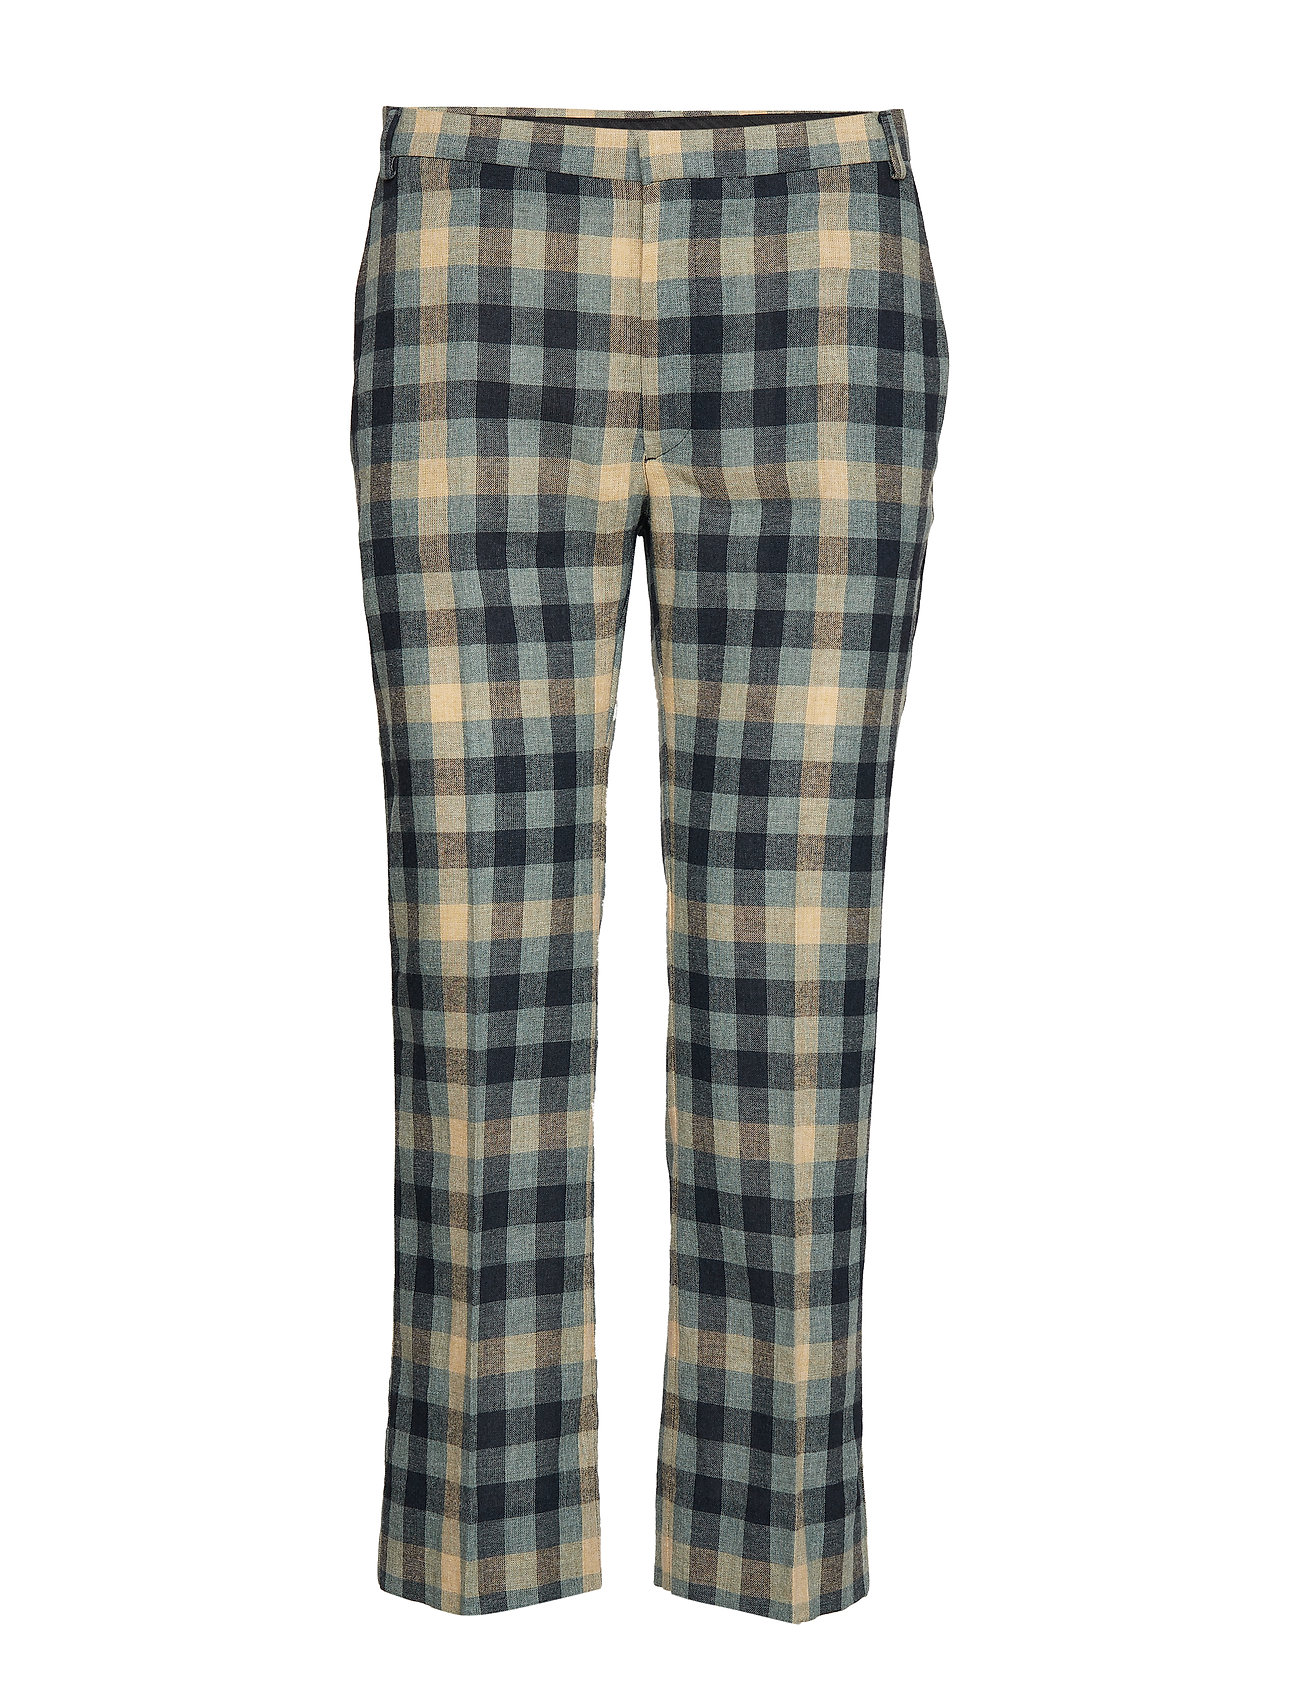 Whyred CARNOT - BLUE CHECK